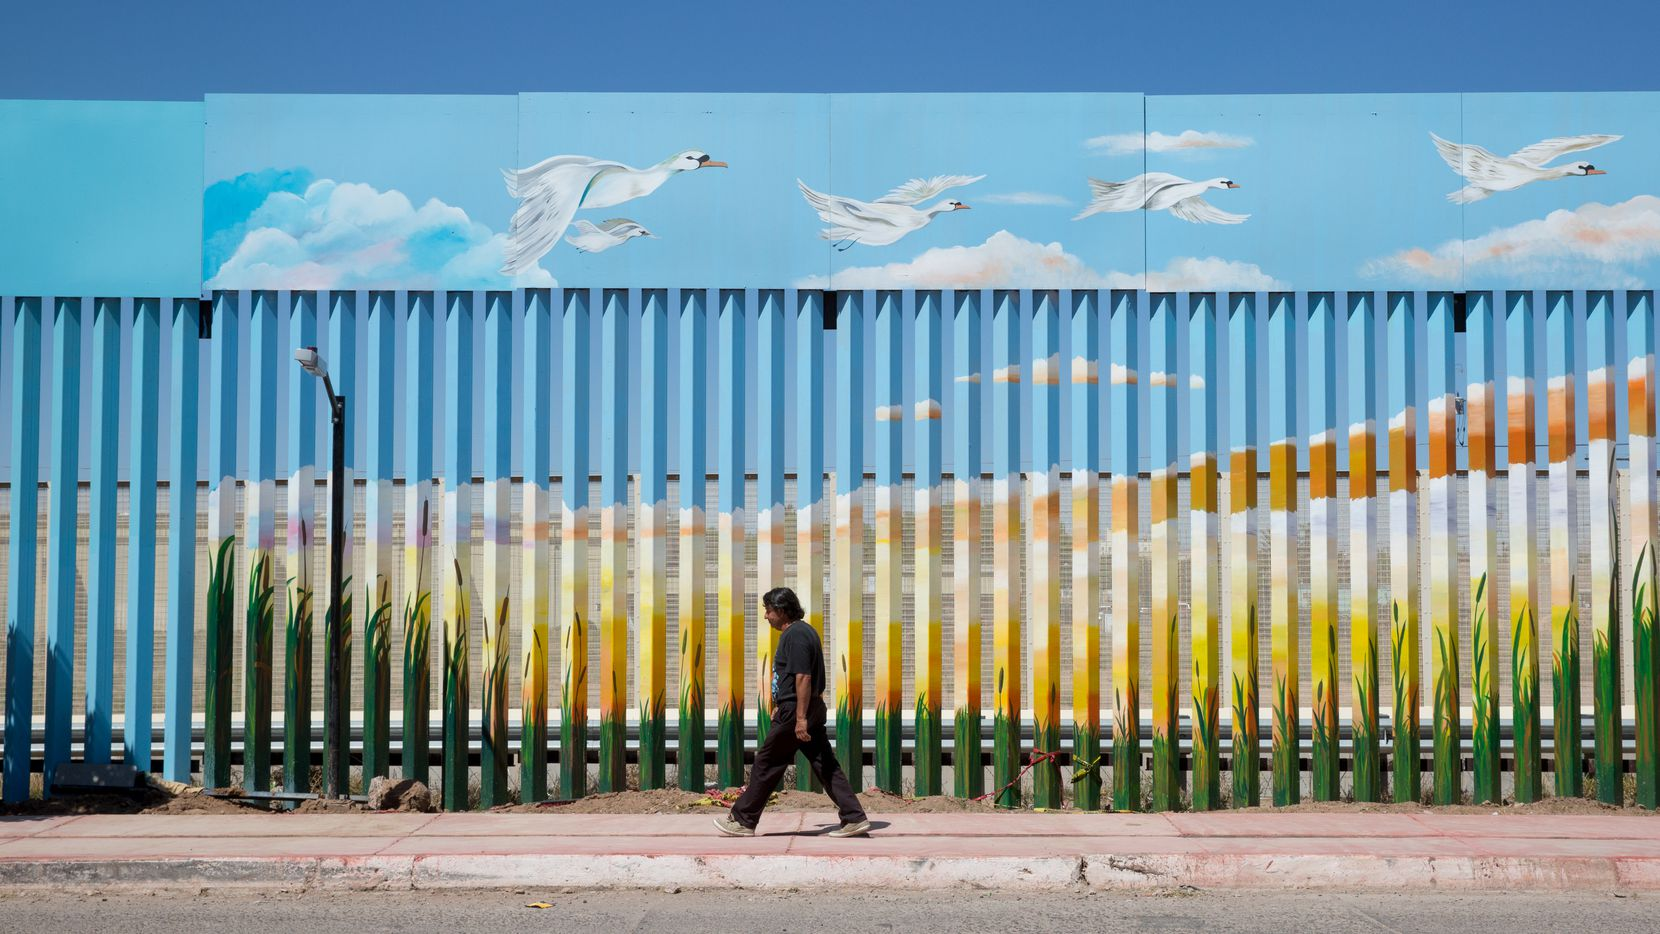 A man walks past the painted border fence in Agua Prieta, Mexico across the border from Douglas, Ariz. A man walks past the painted border fence in Agua Prieta, Mexico.